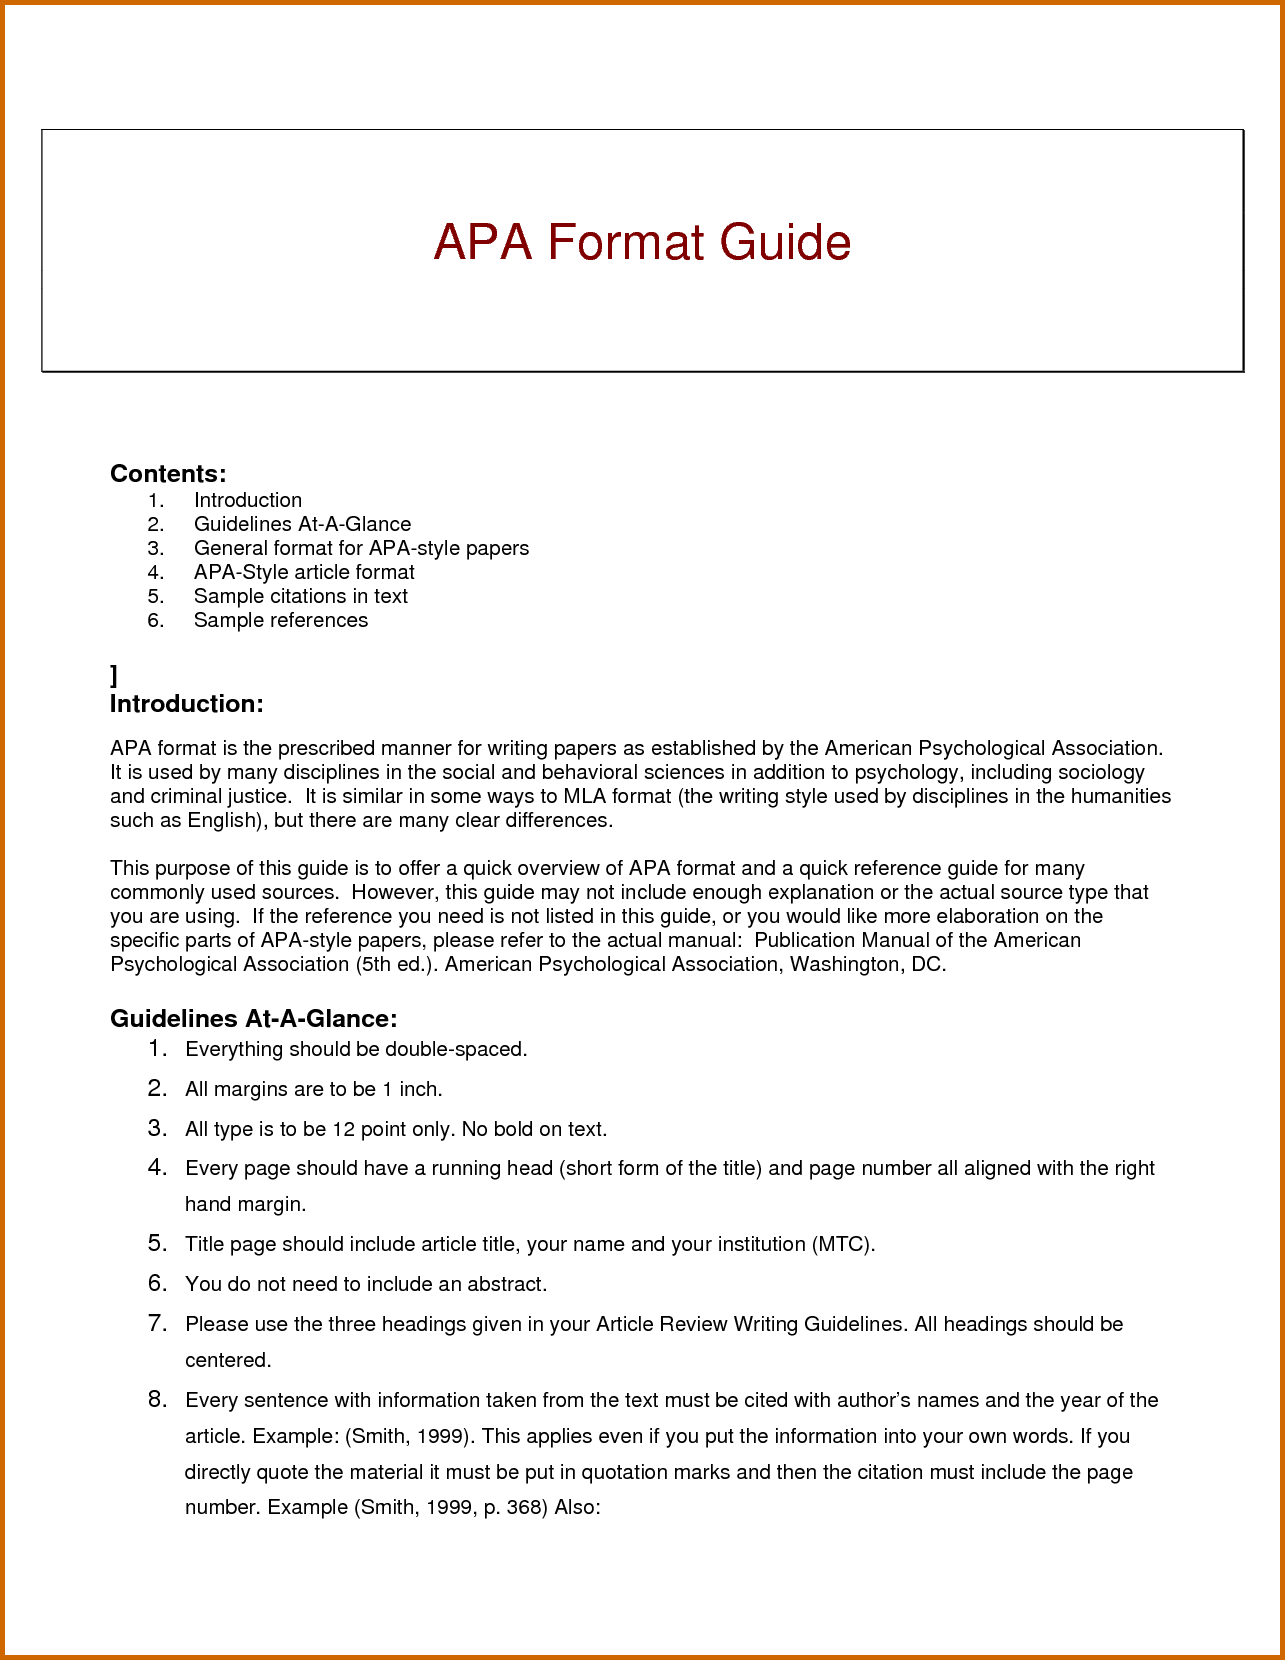 018 Research Paper Format Images In Apa Striking A The Imrad Writing Full